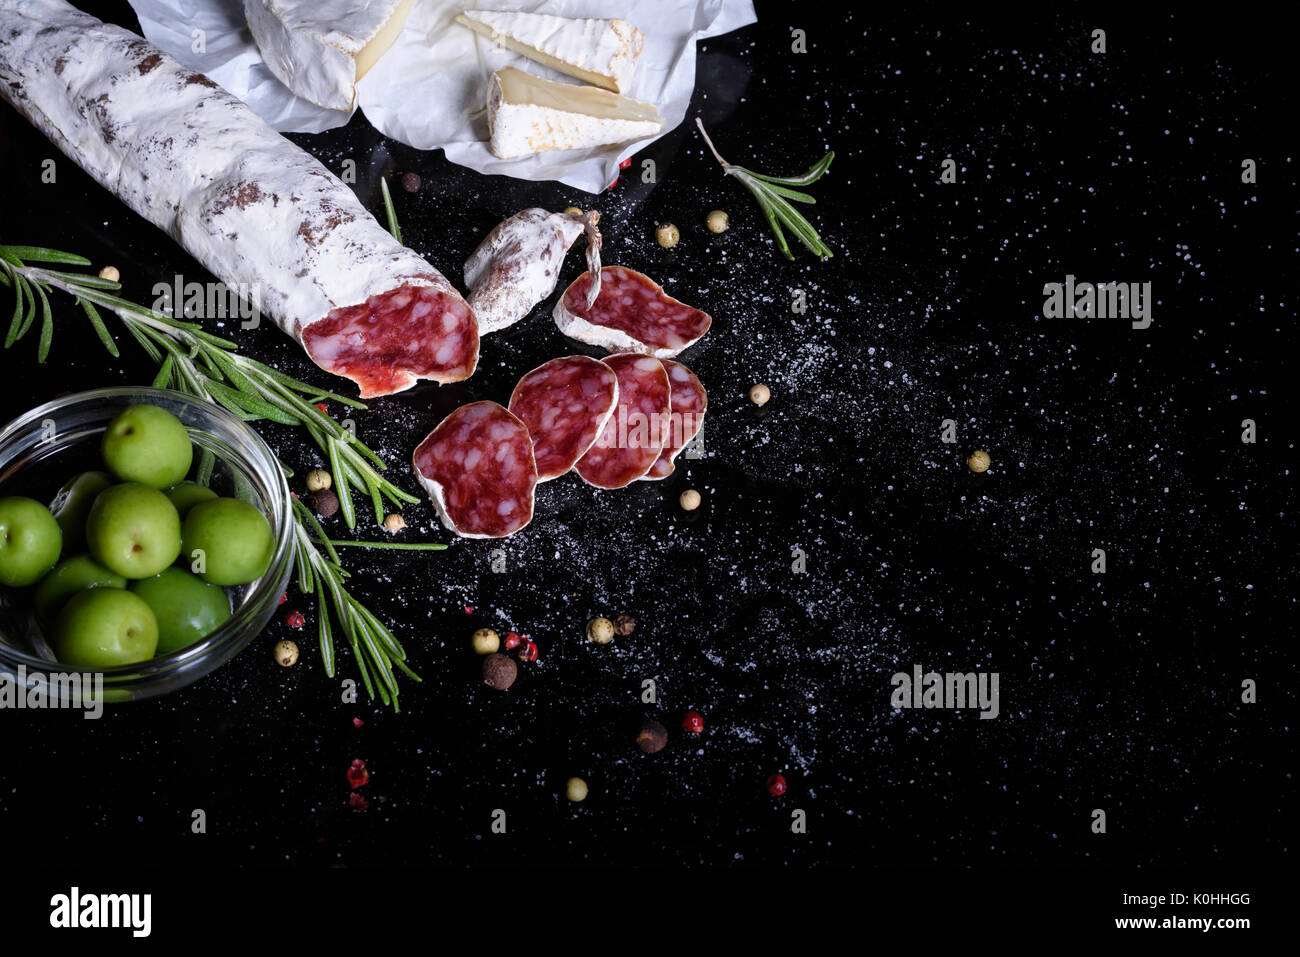 Traditional spanish snack on black background. Fuet sausage with cheese and olives. Top view. - Stock Image